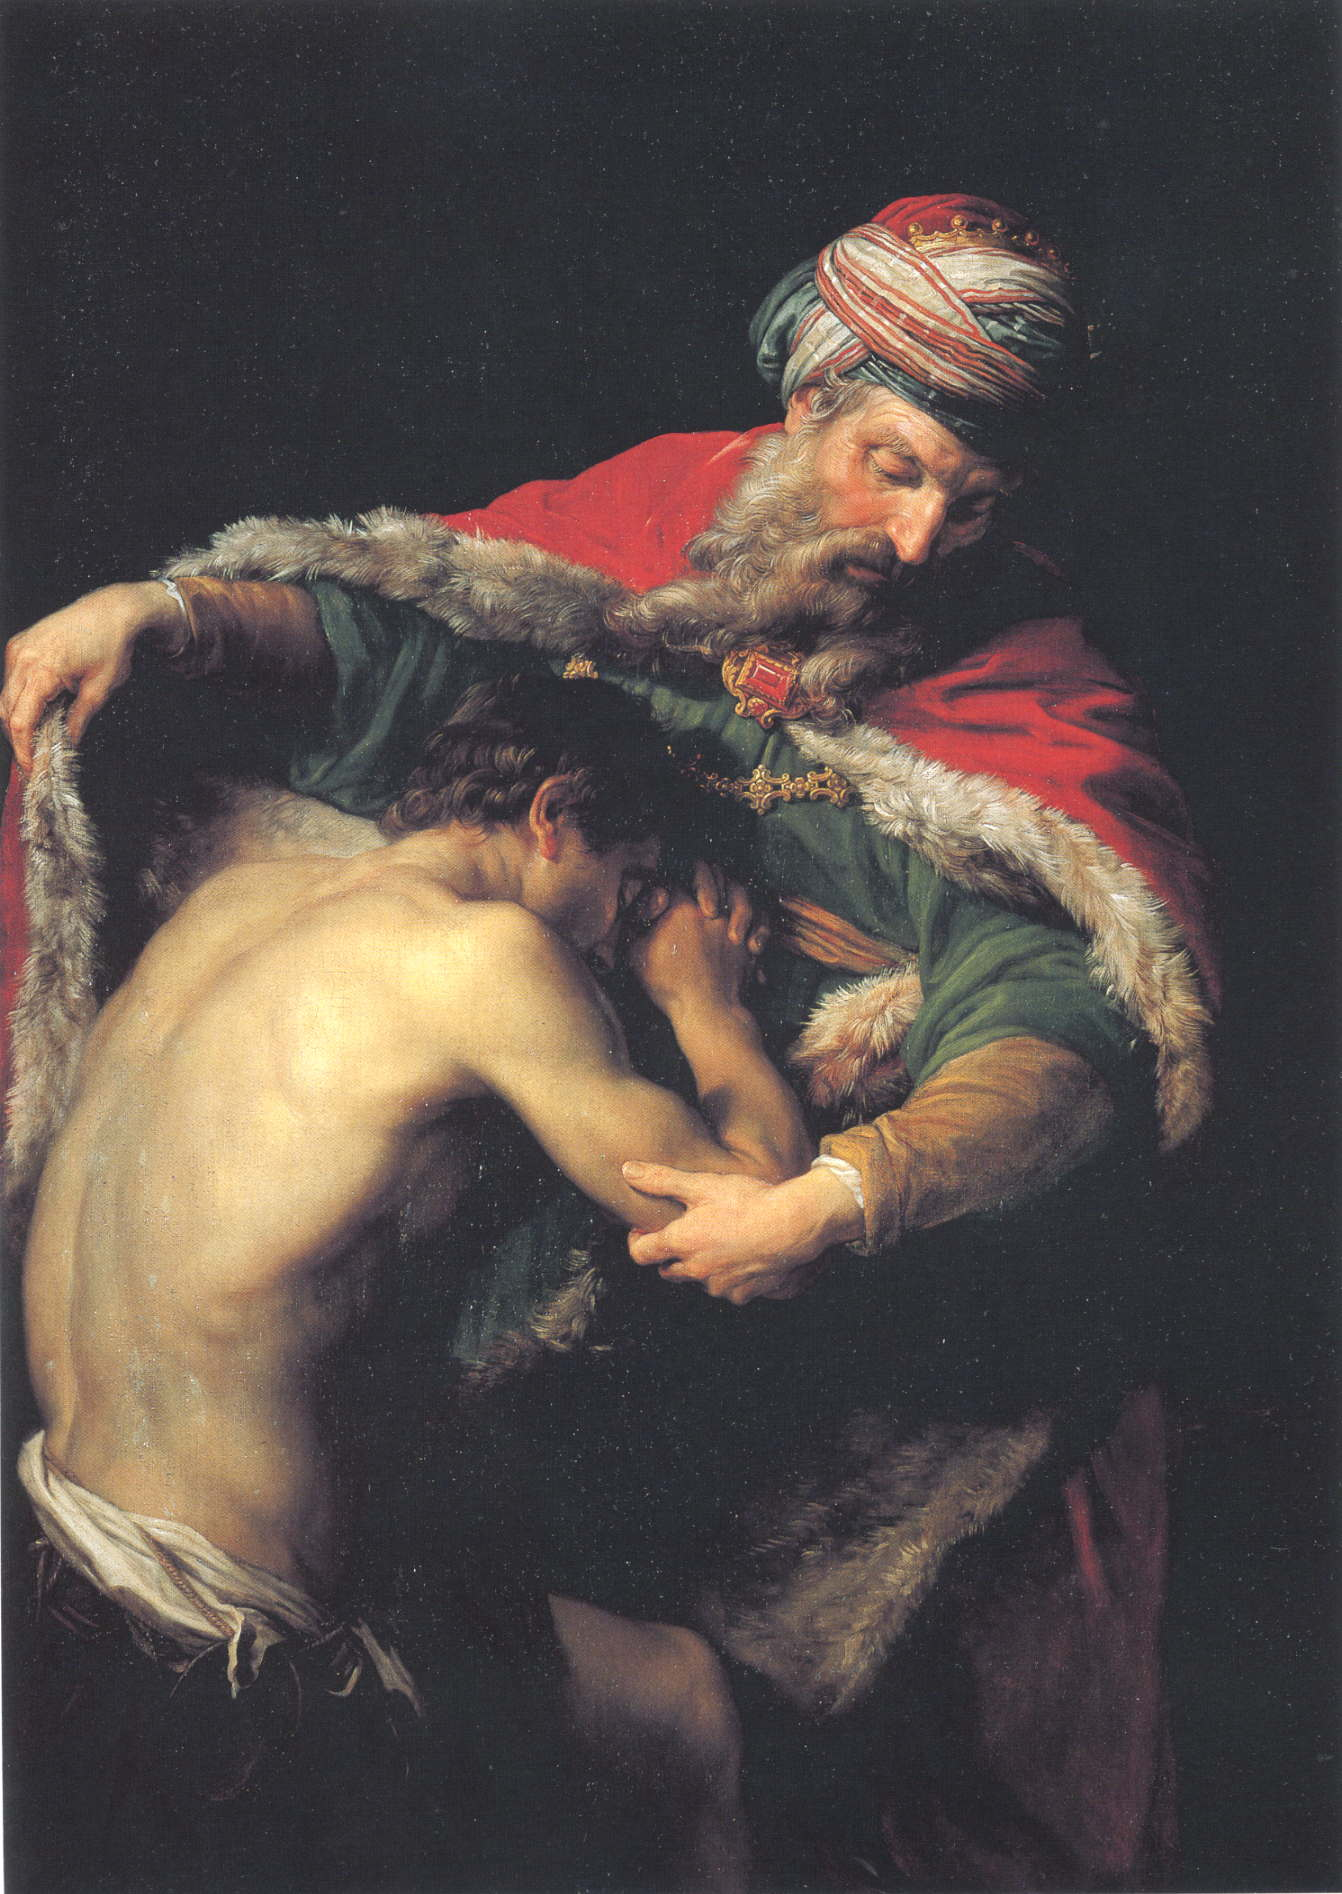 Batoni_1773_Return-of-the-Prodigal-Son_GGW-301